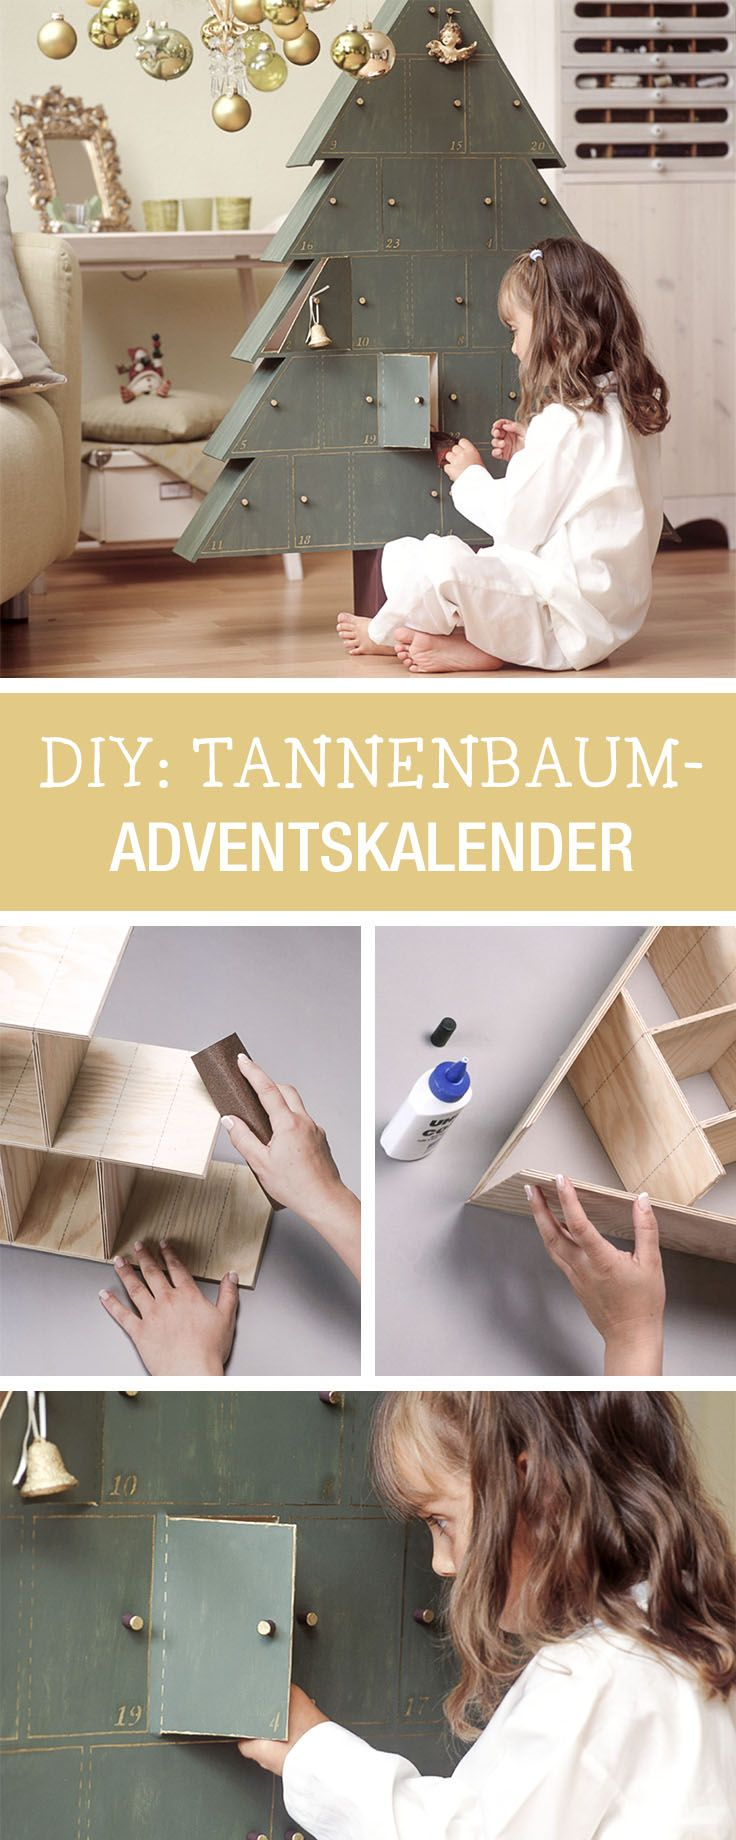 diy anleitung tannenbaum adventskalender aus holz basteln. Black Bedroom Furniture Sets. Home Design Ideas